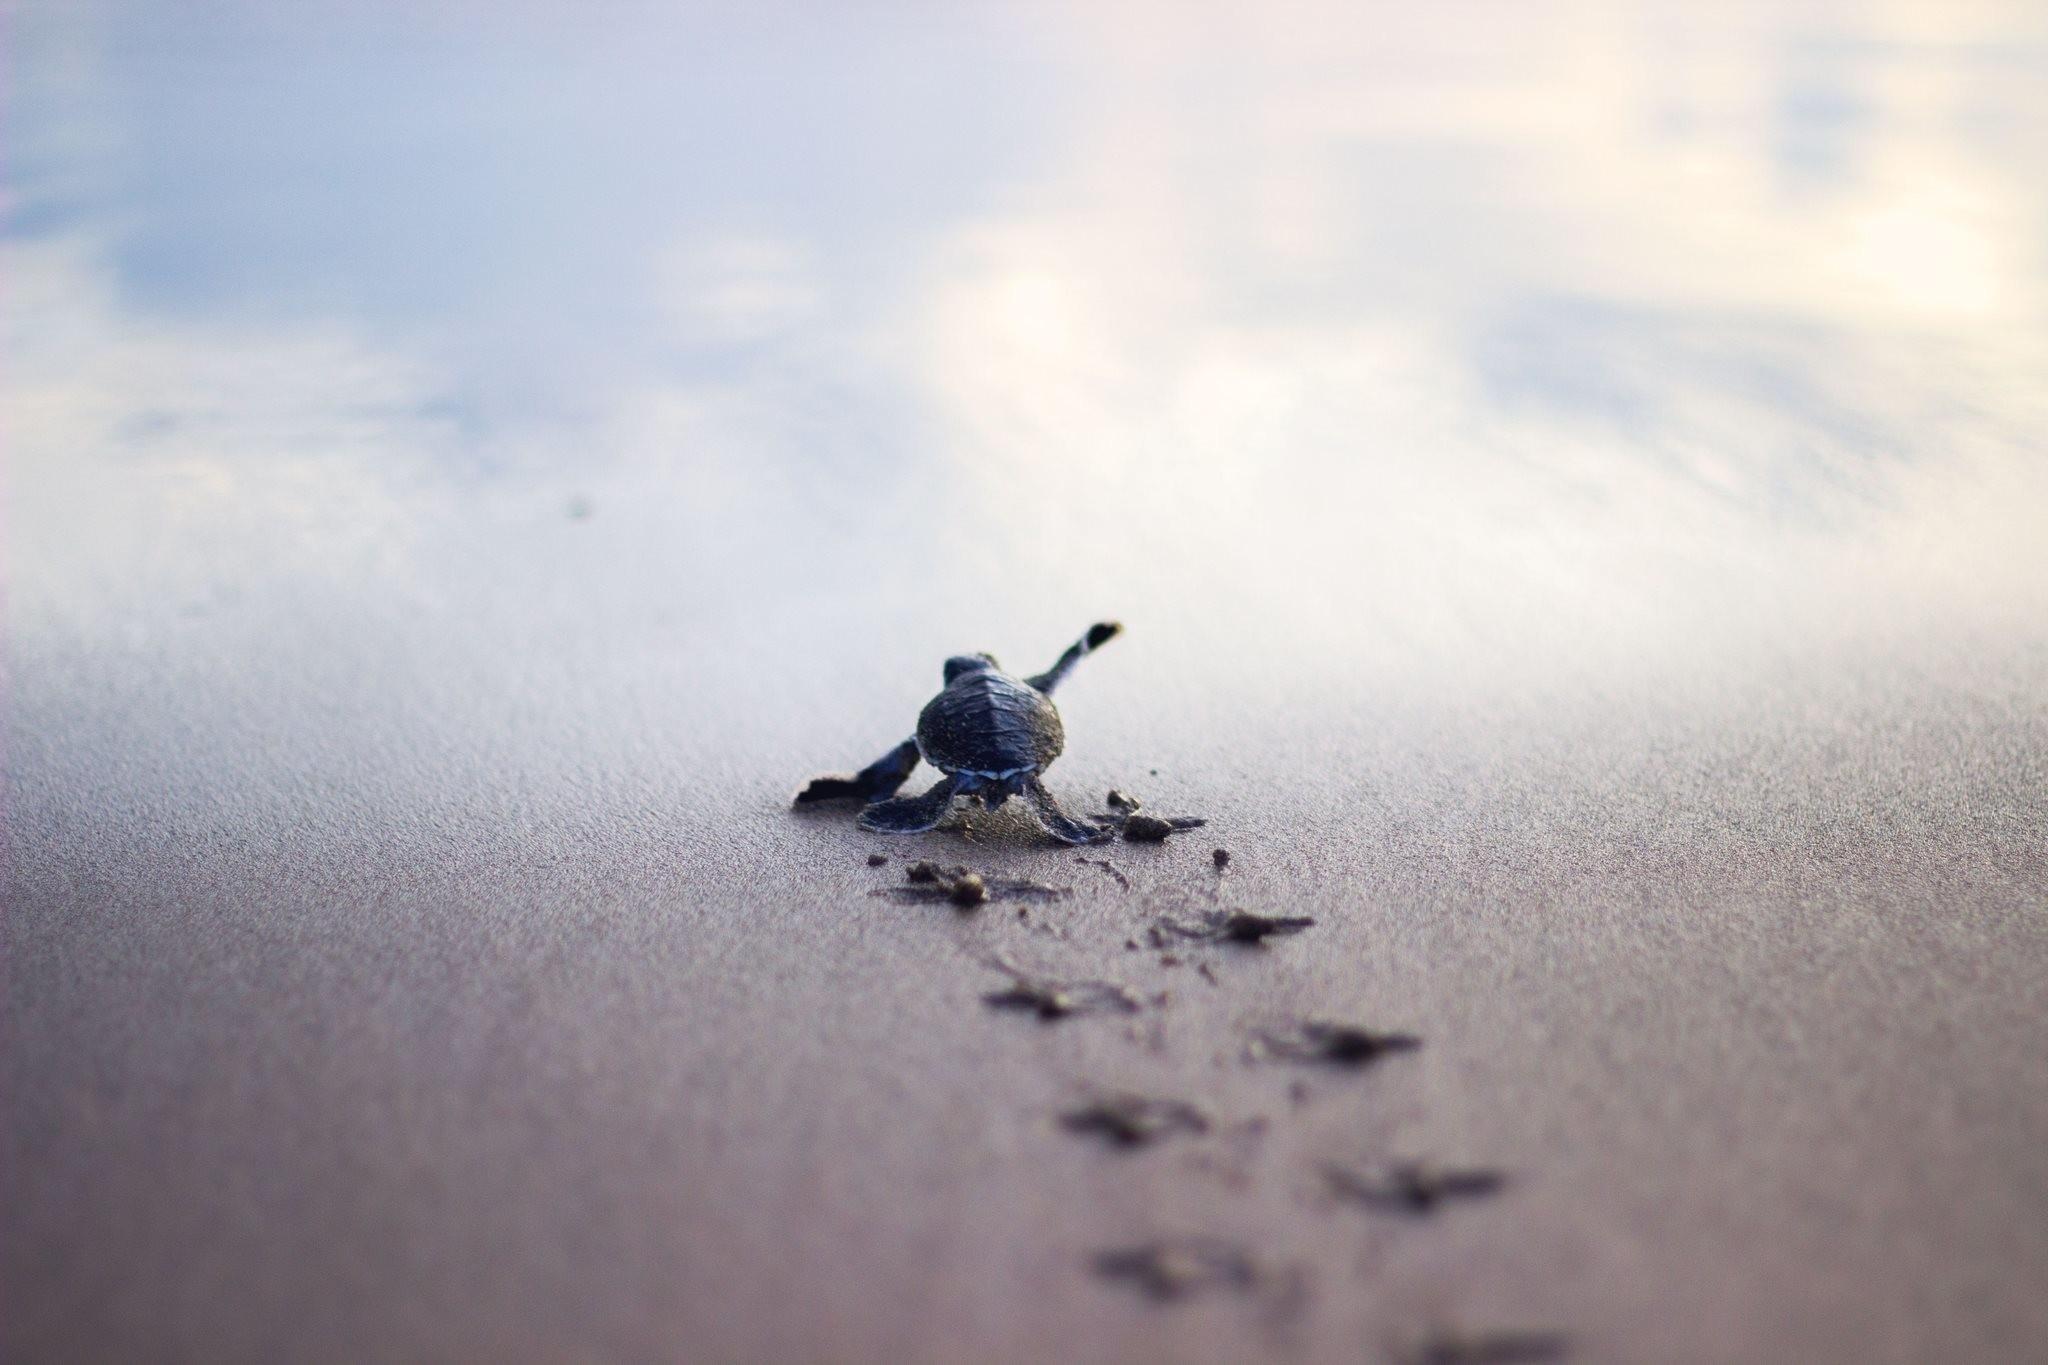 baby turtle wallpaper (54+ images)